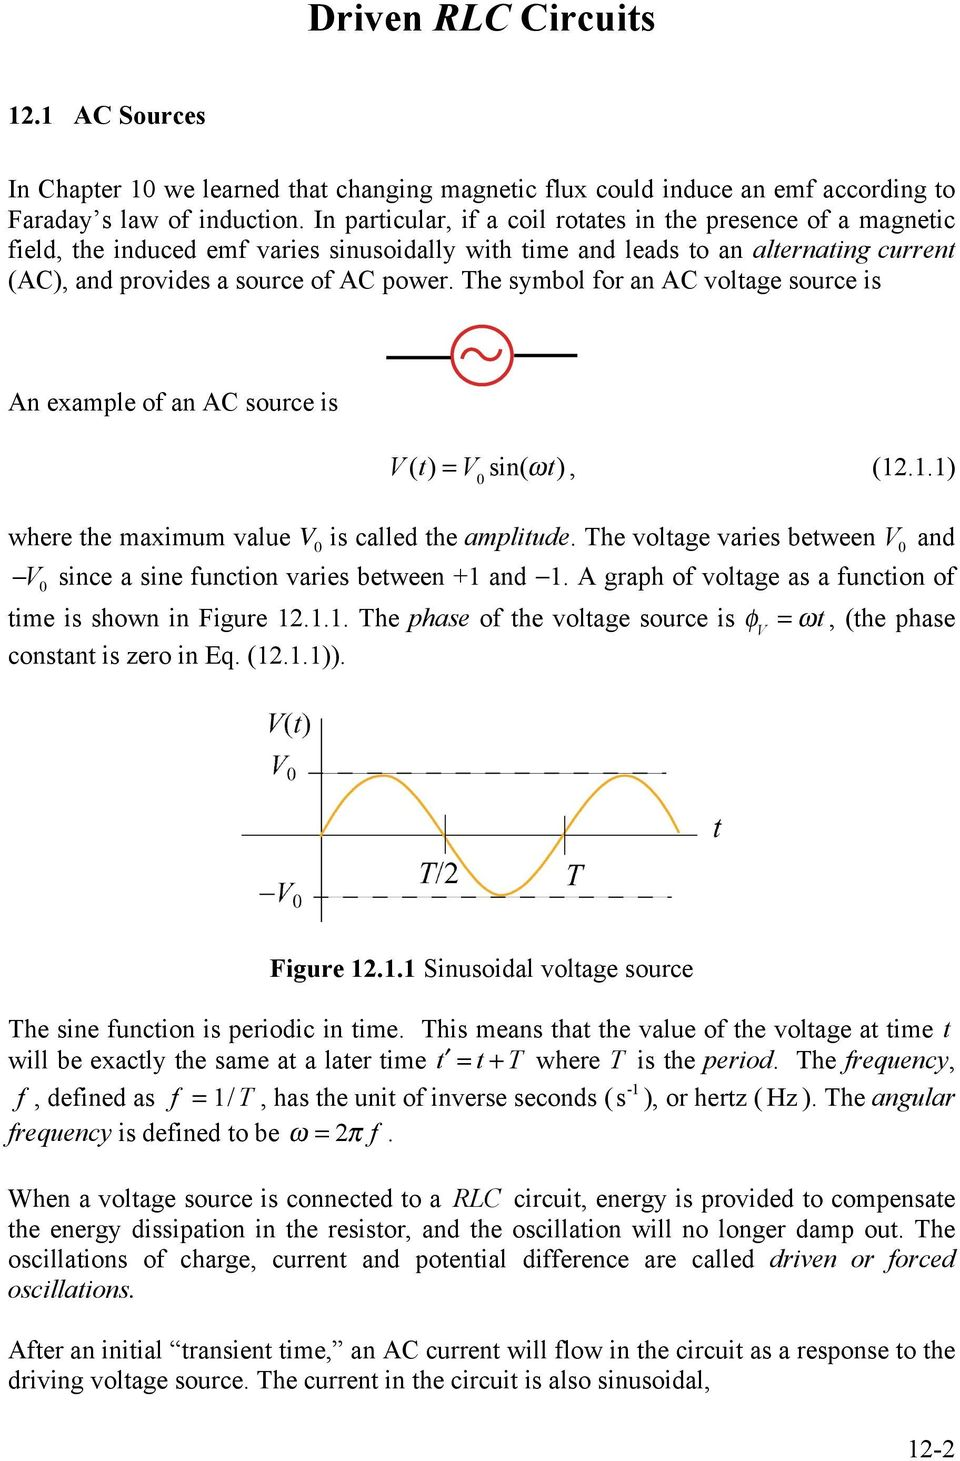 Chapter 12 Driven Rlc Circuits Pdf Currents In Rc And Rl With Increasing Frequency The Symbol For An A Voltage Source Is Example Of V